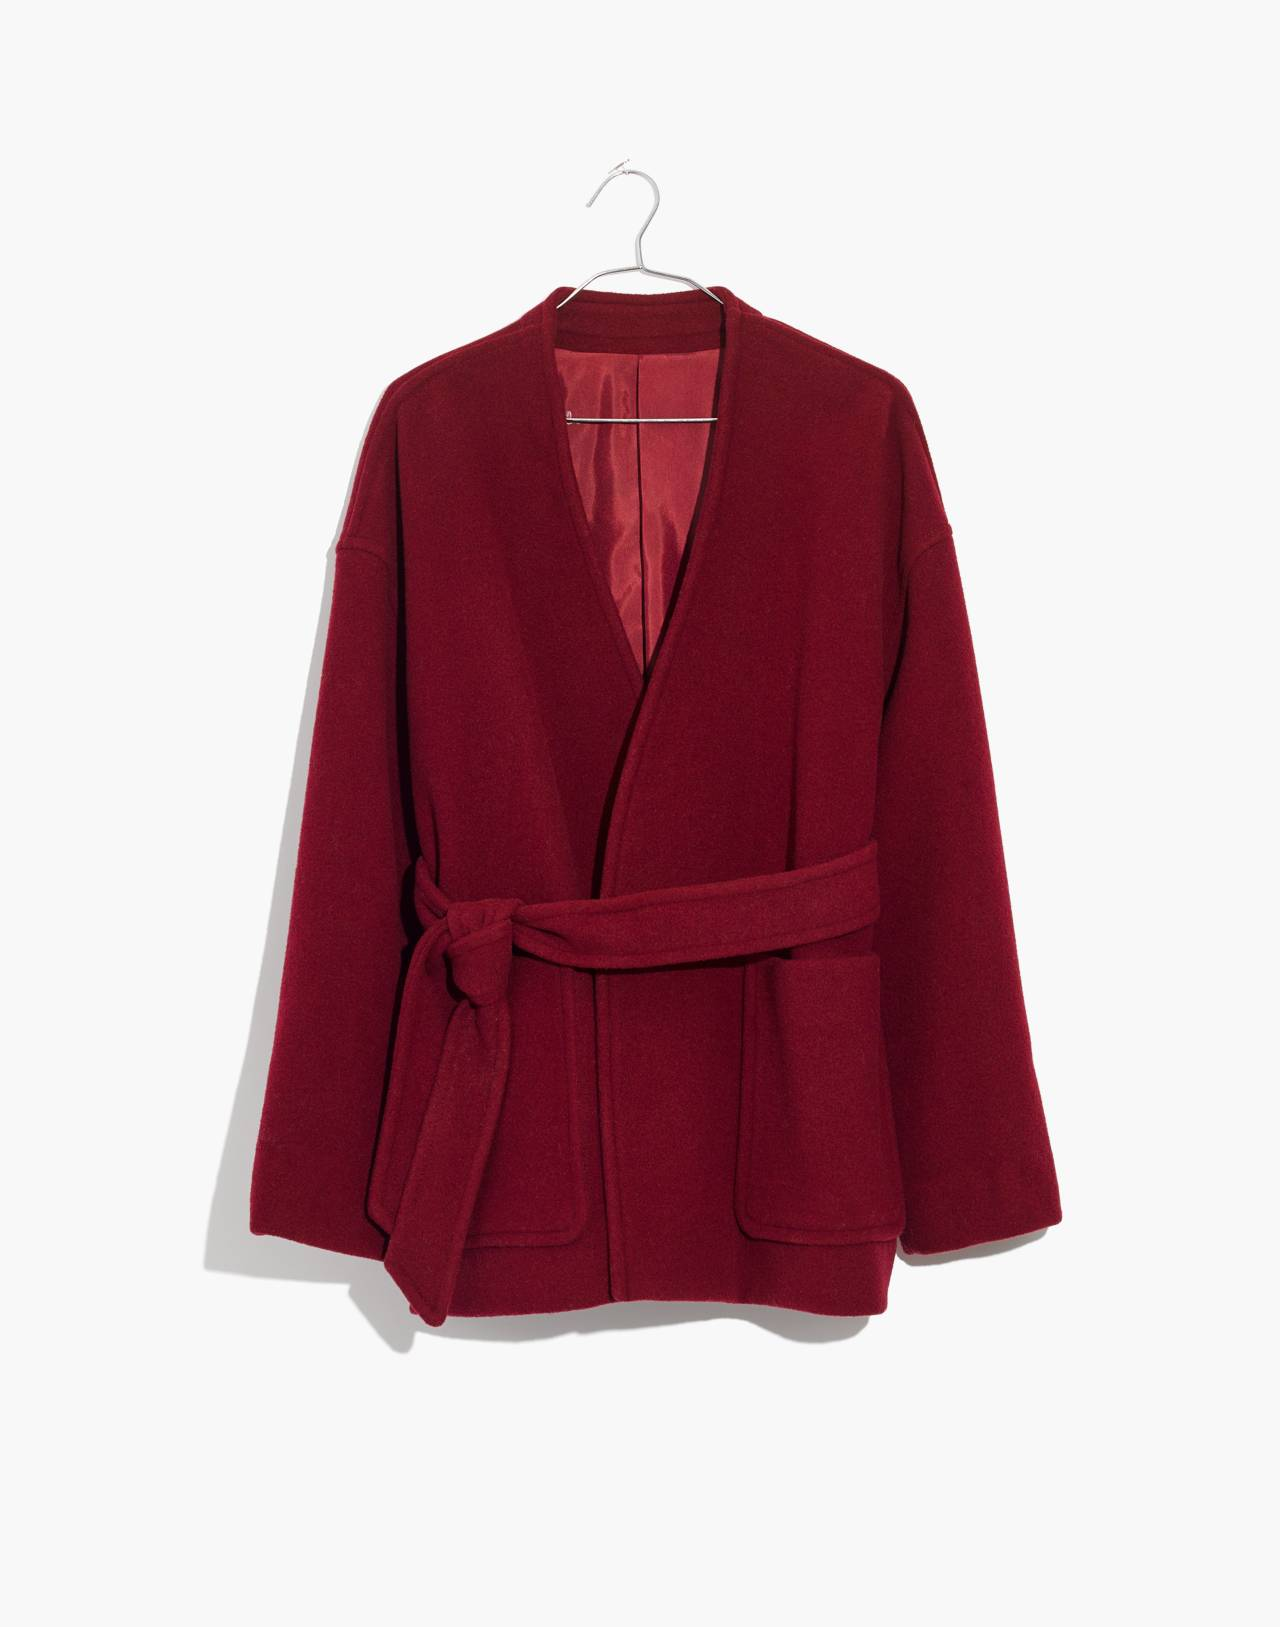 Belted Wrap Coat in dusty burgundy image 4